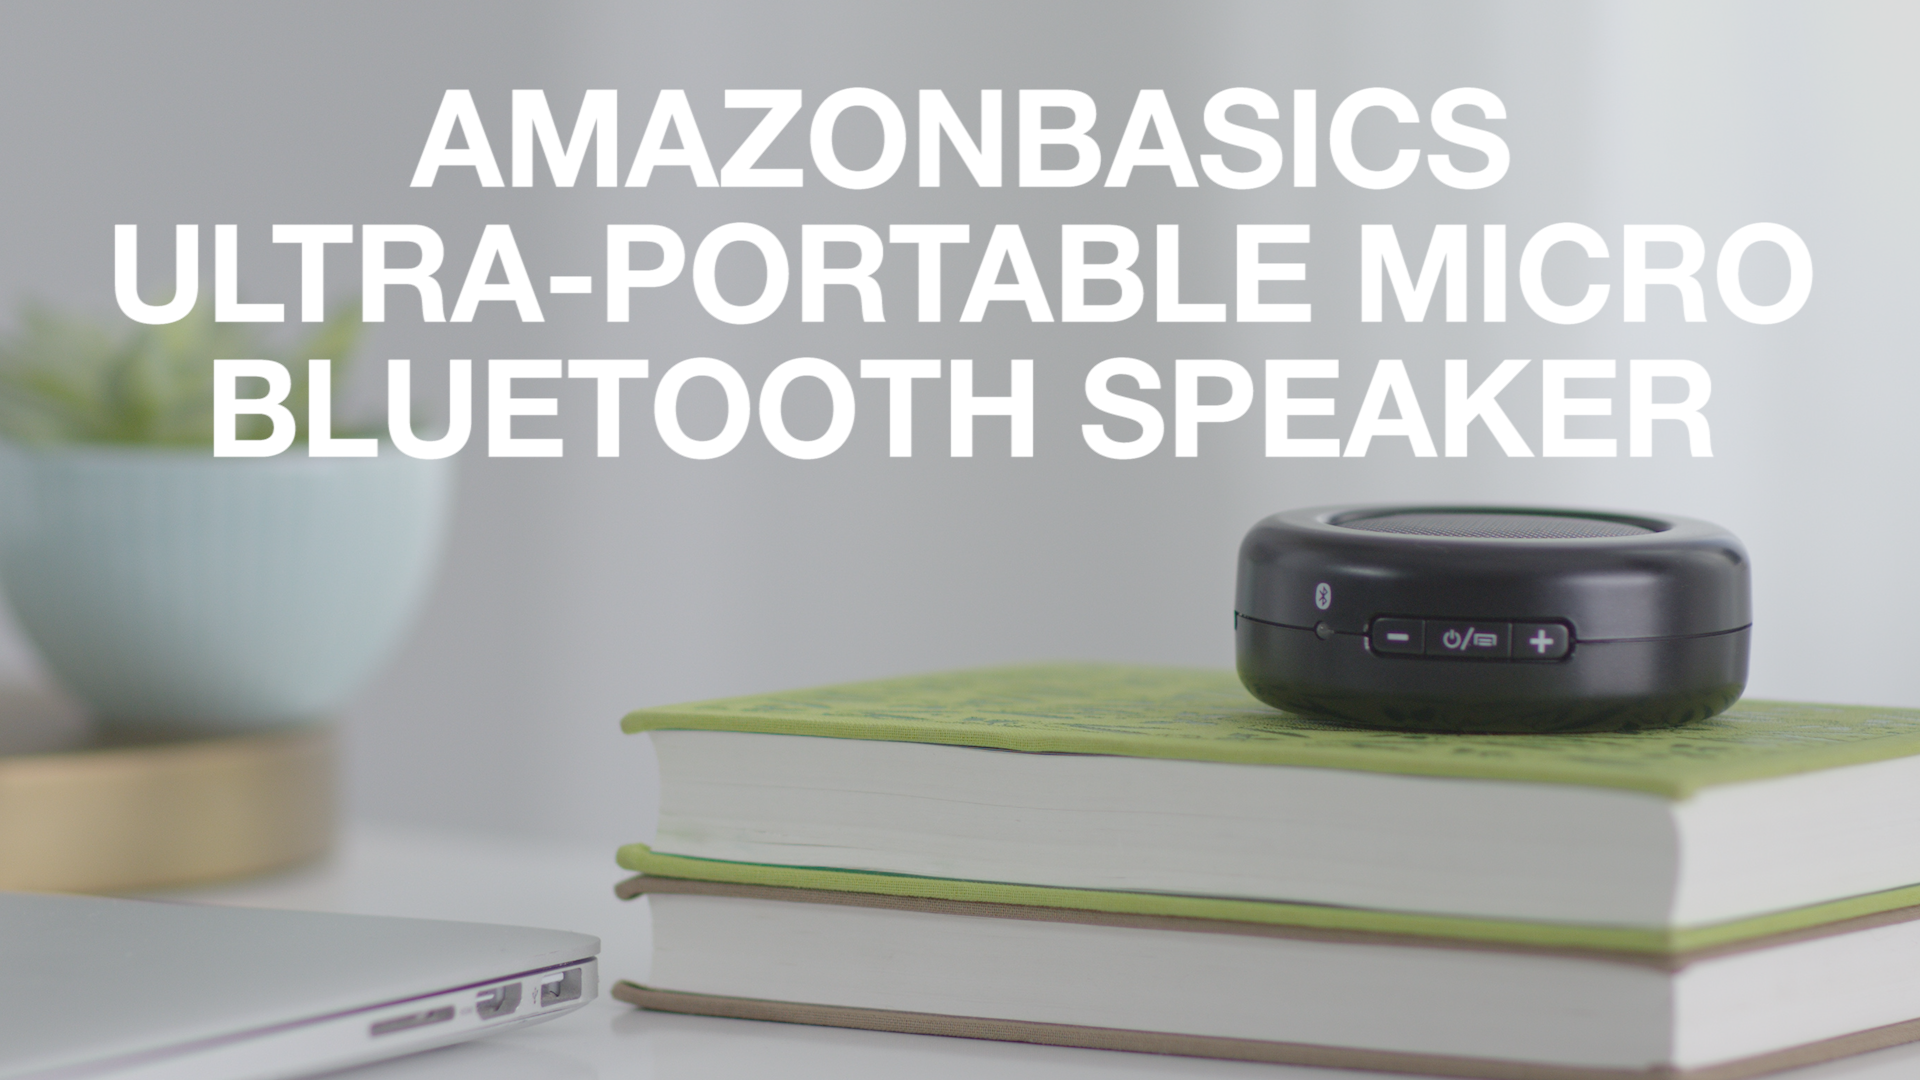 How to use: AmazonBasics Ultra-Portable Micro Bluetooth Speaker